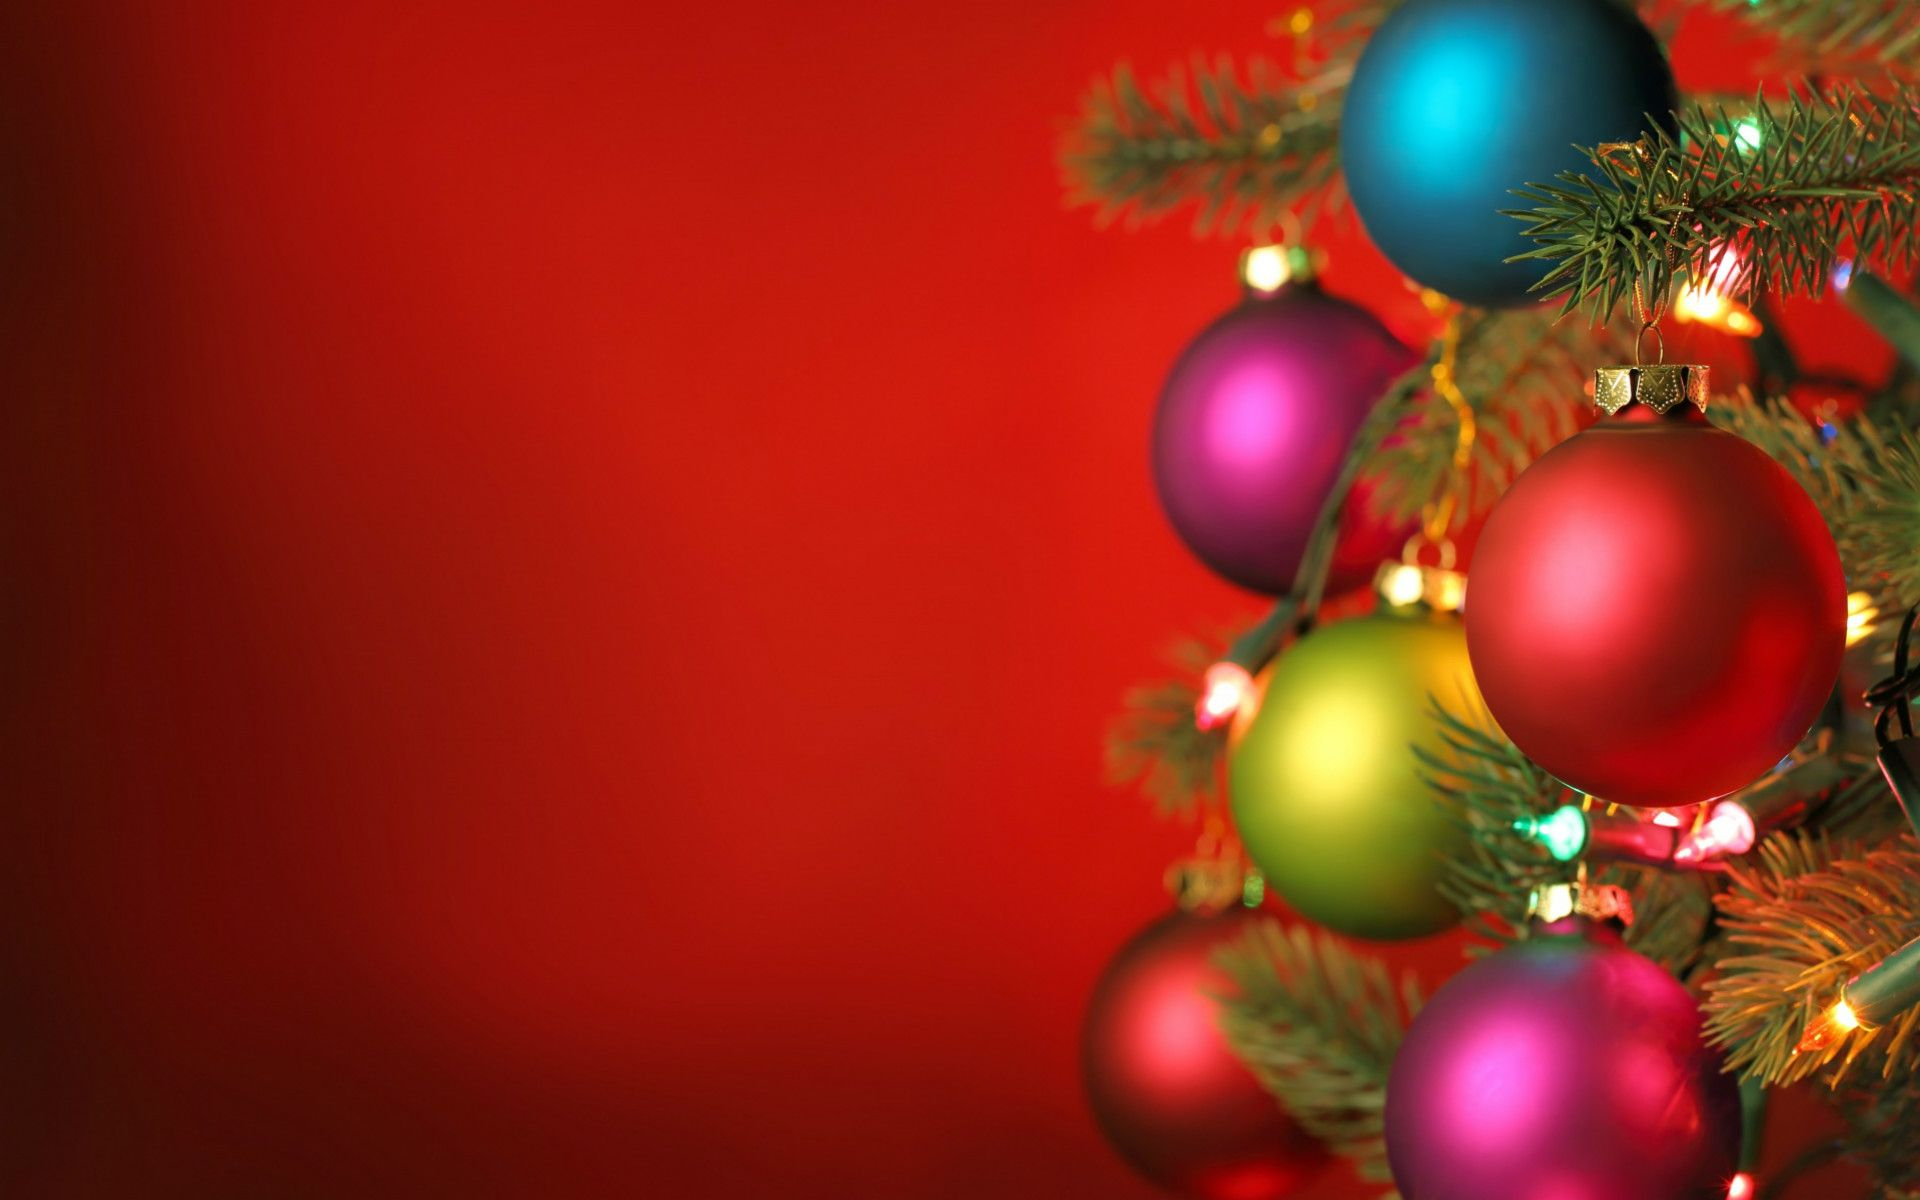 Abstract Christmas Tree on Red Background High Resolution